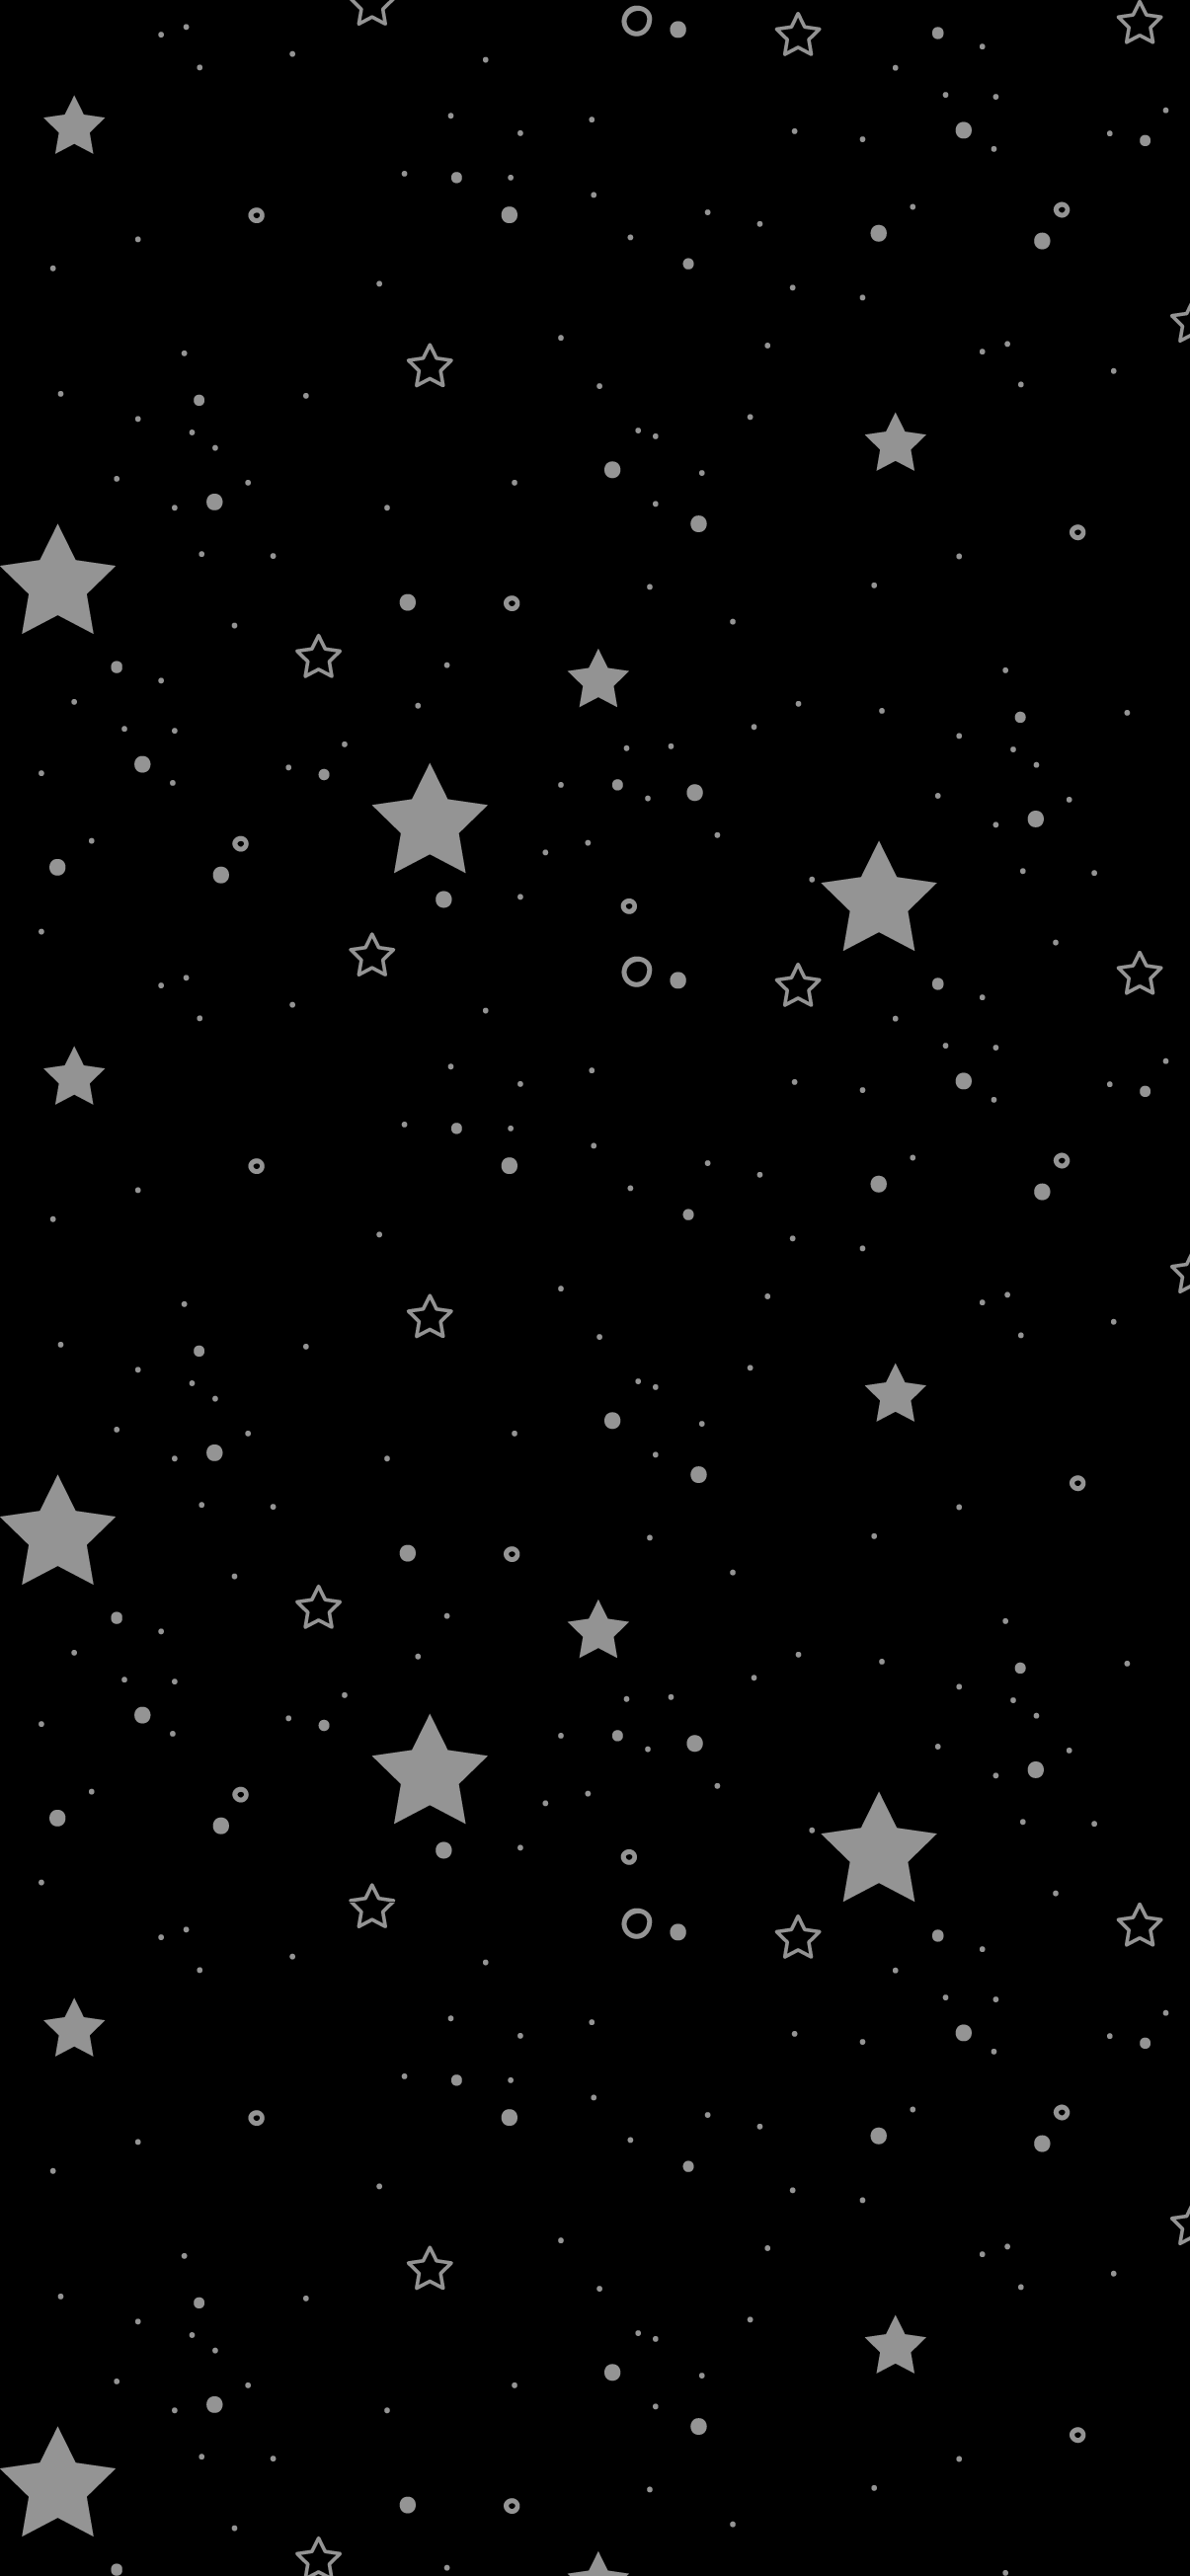 amoled stars galaxy wallpaper black 4k